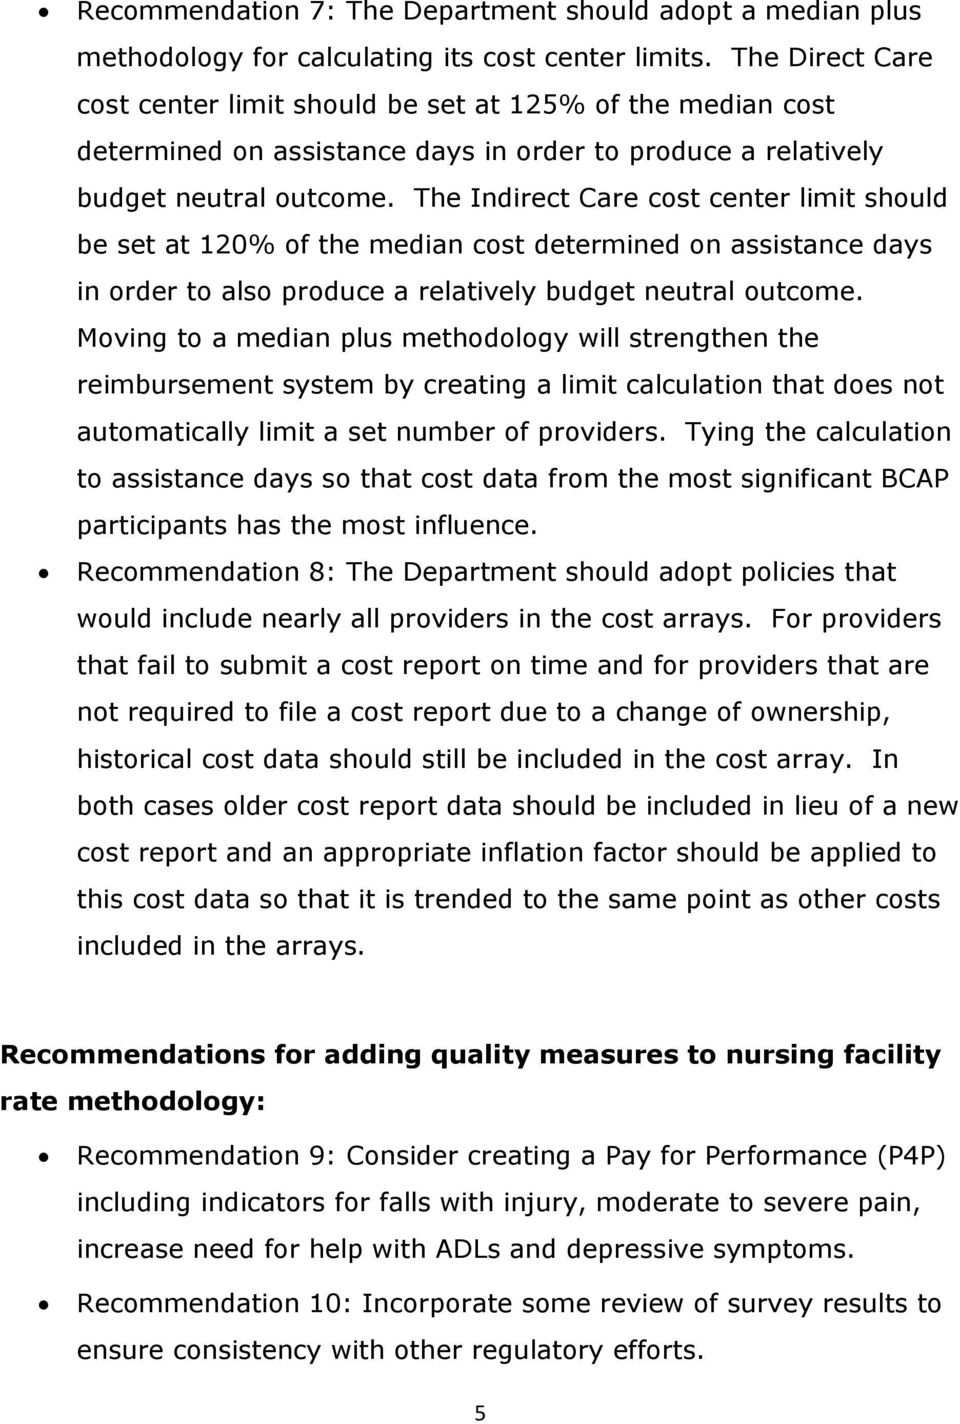 The Indirect Care cost center limit should be set at 120% of the median cost determined on assistance days in order to also produce a relatively budget neutral outcome.